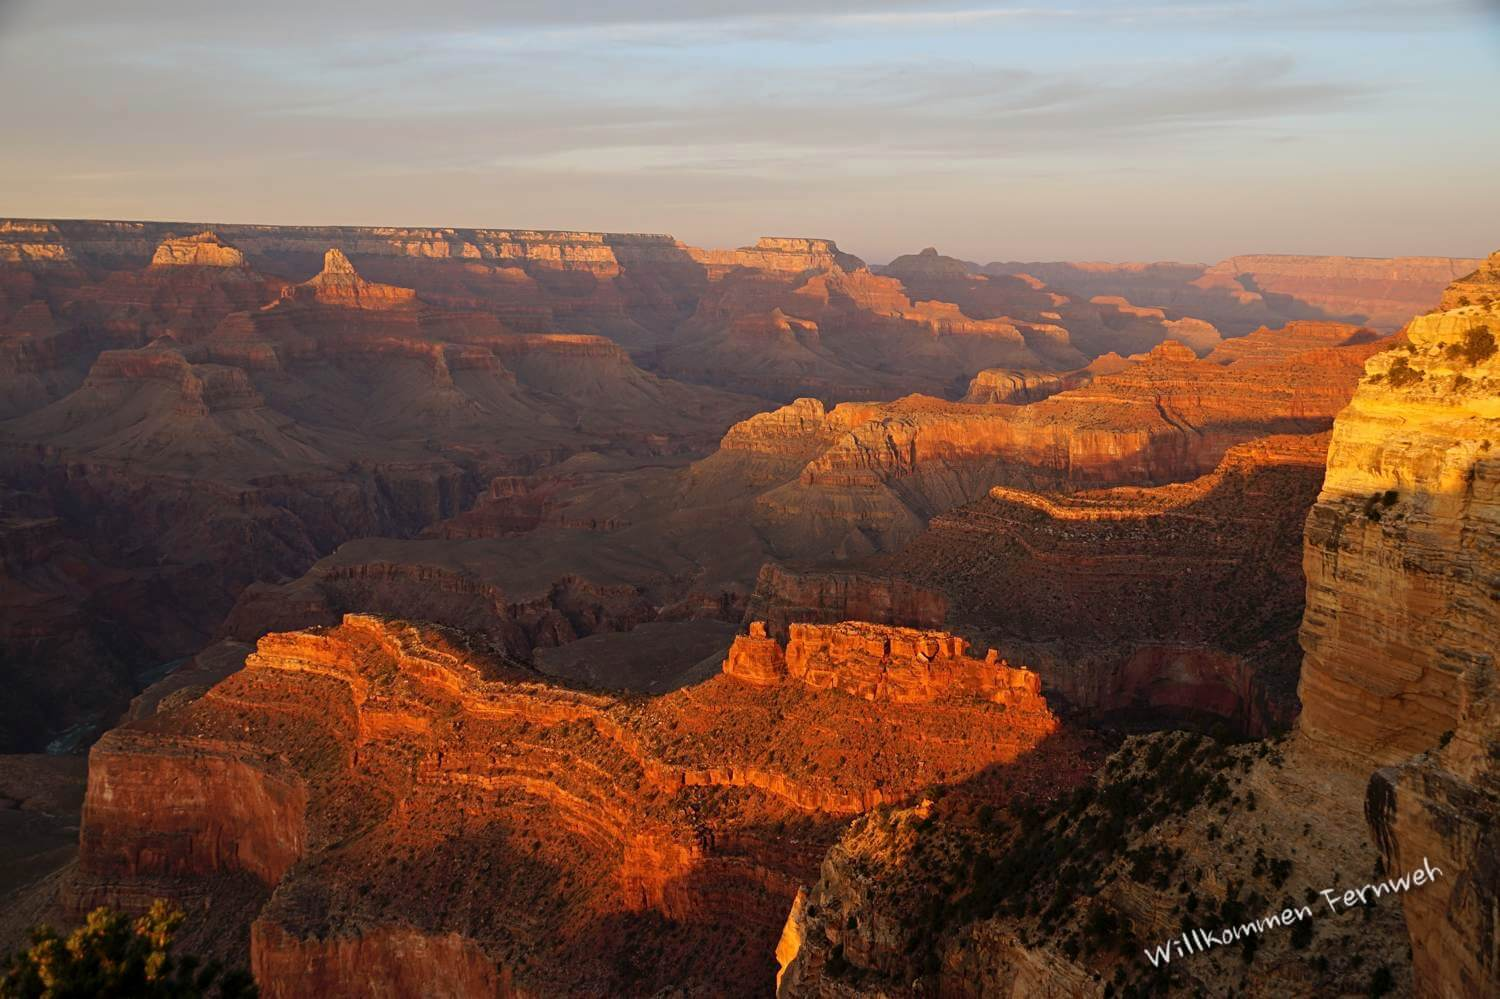 Sonnenuntergang am Hopi Point, Grand Canyon National Park